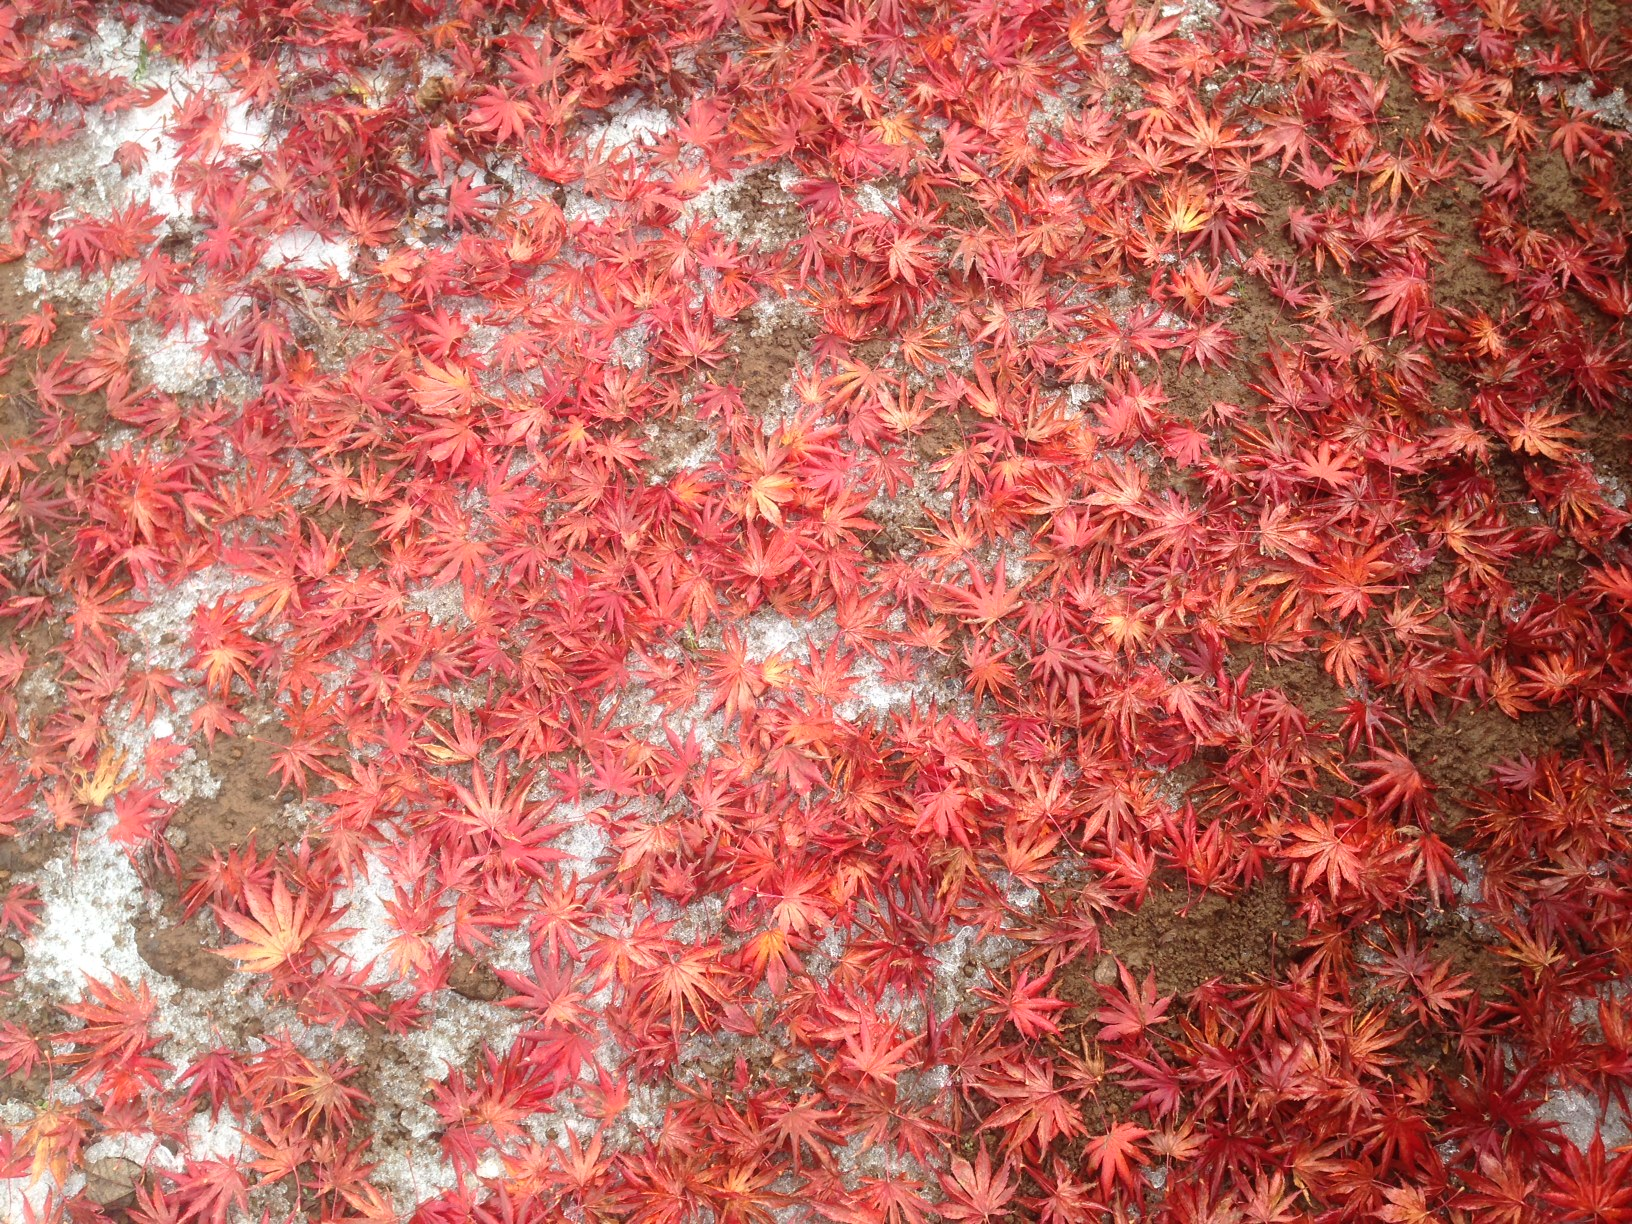 Fall leaves resting on early light snow